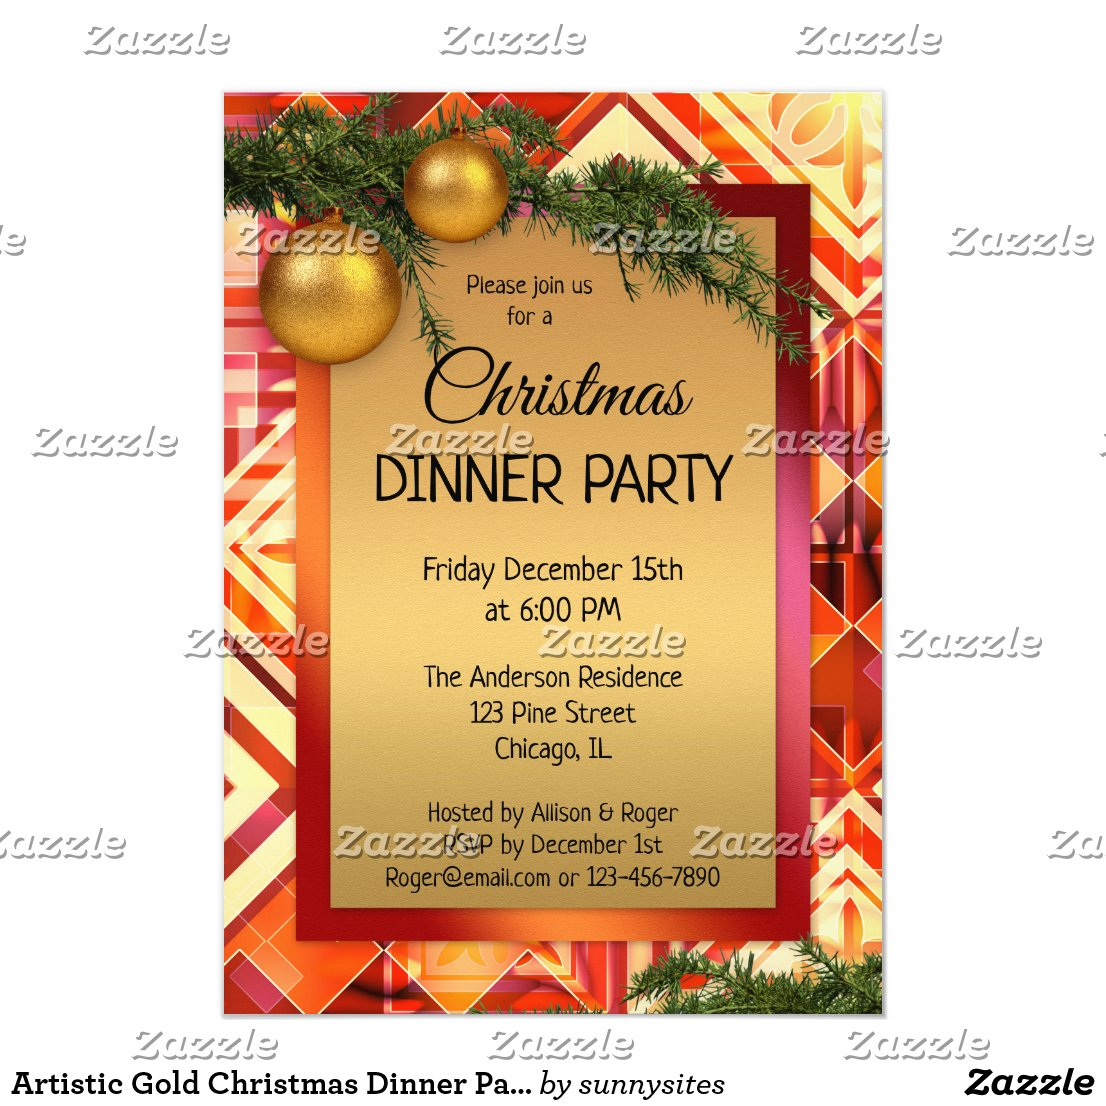 Artistic Gold Christmas Dinner Party Invitation